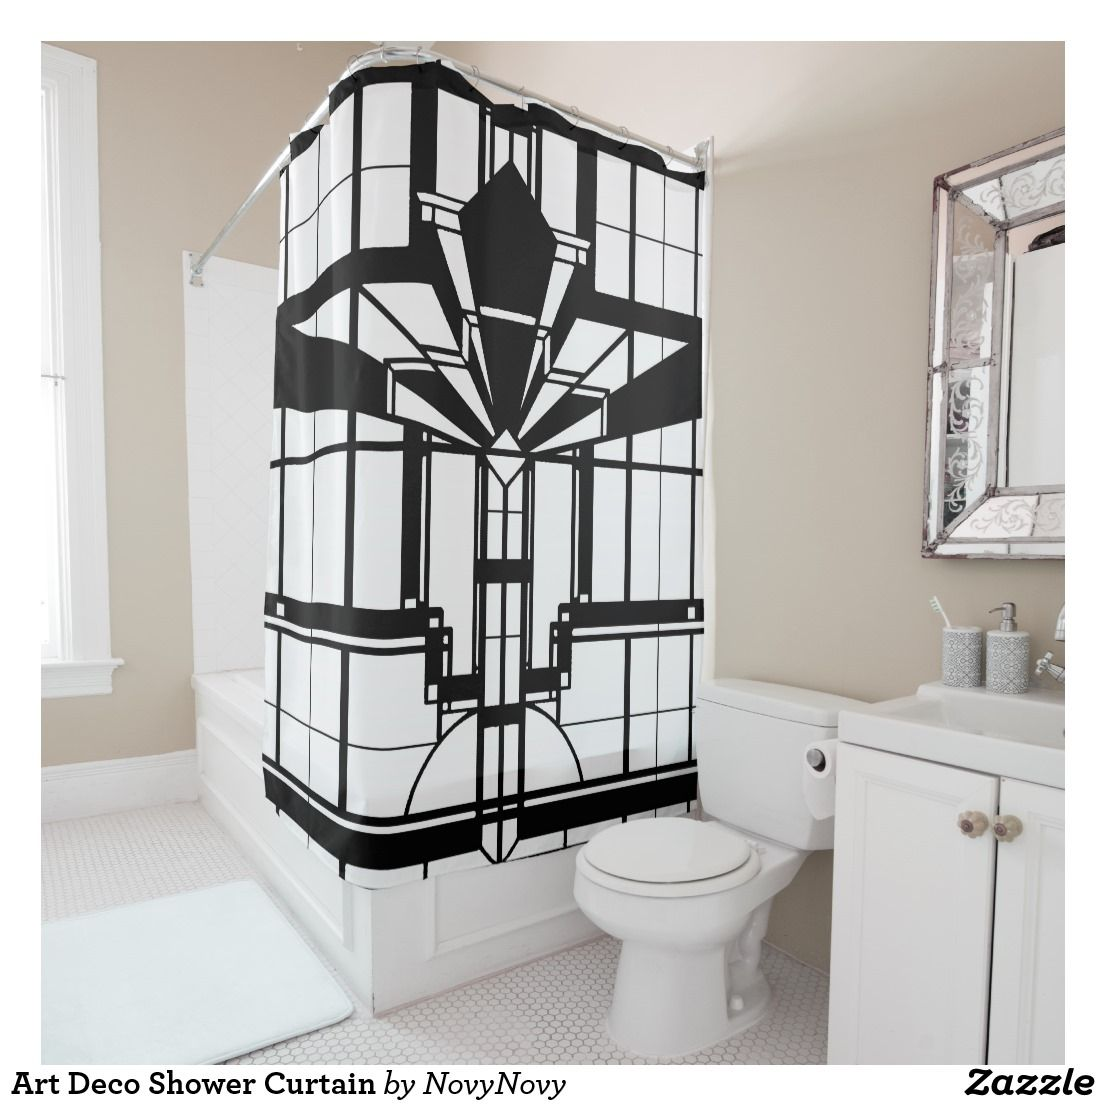 Art Deco Shower Curtain Zazzle Com Custom Shower Curtains